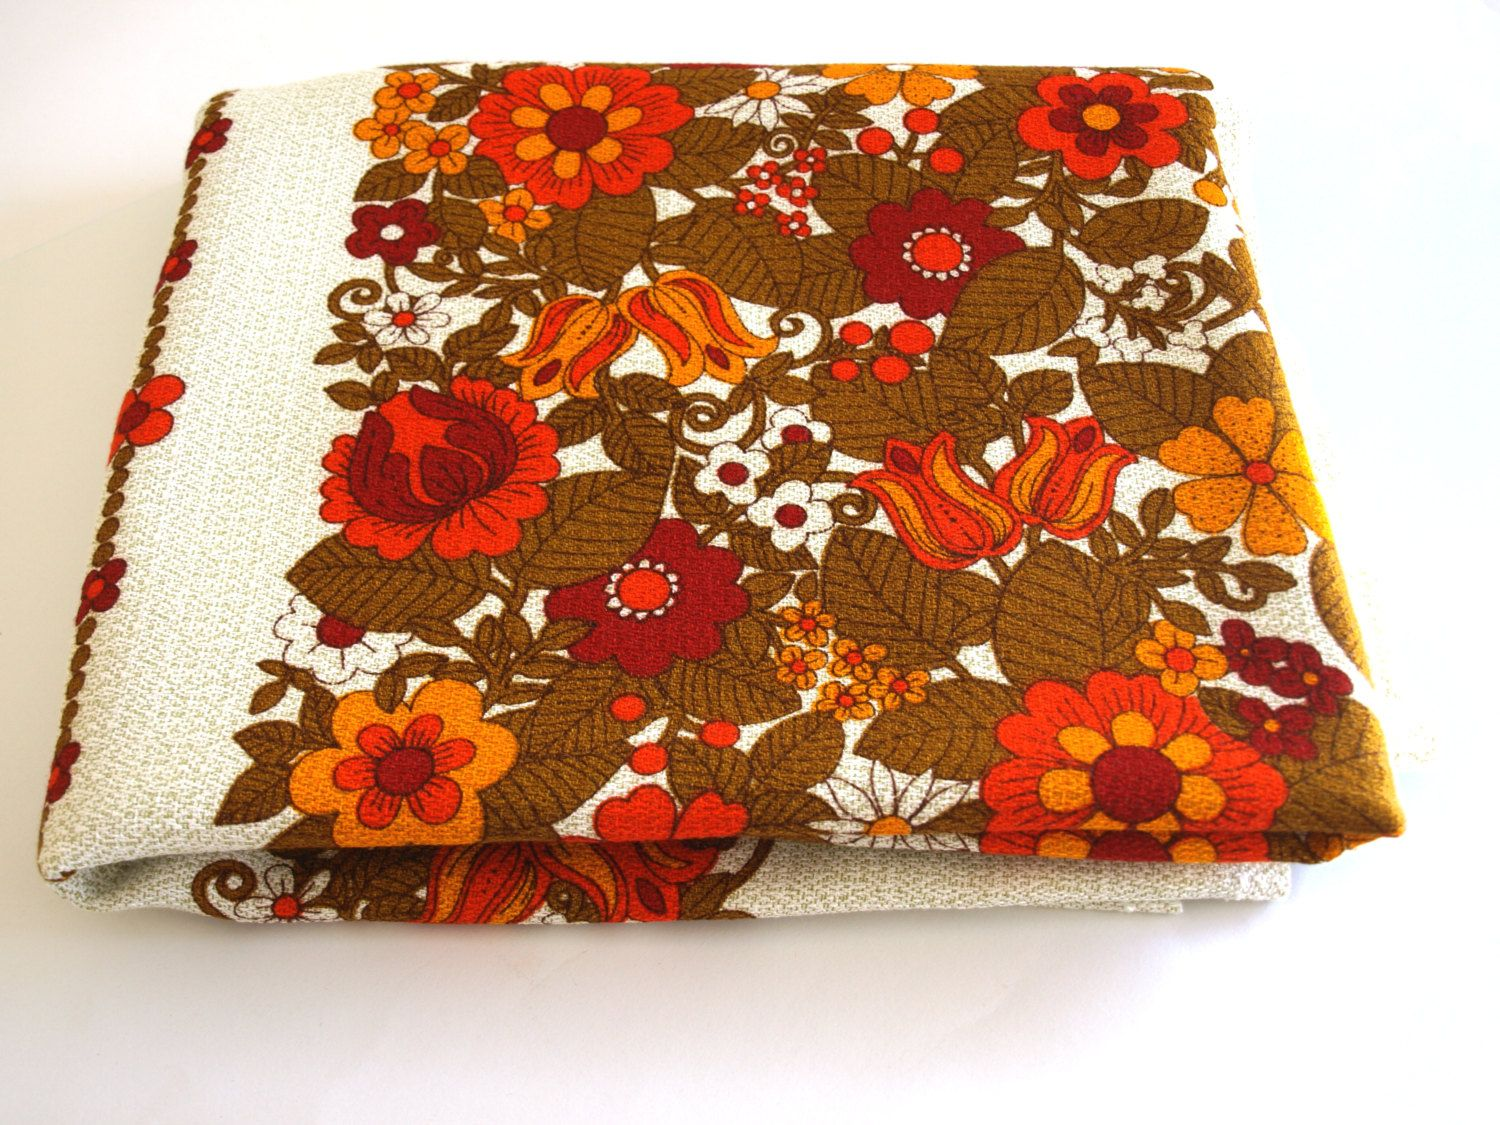 Retro 70s Flower Power Tablecloth   Vintage Orange, Yellow, Red Daisy Poppy  Or Floral